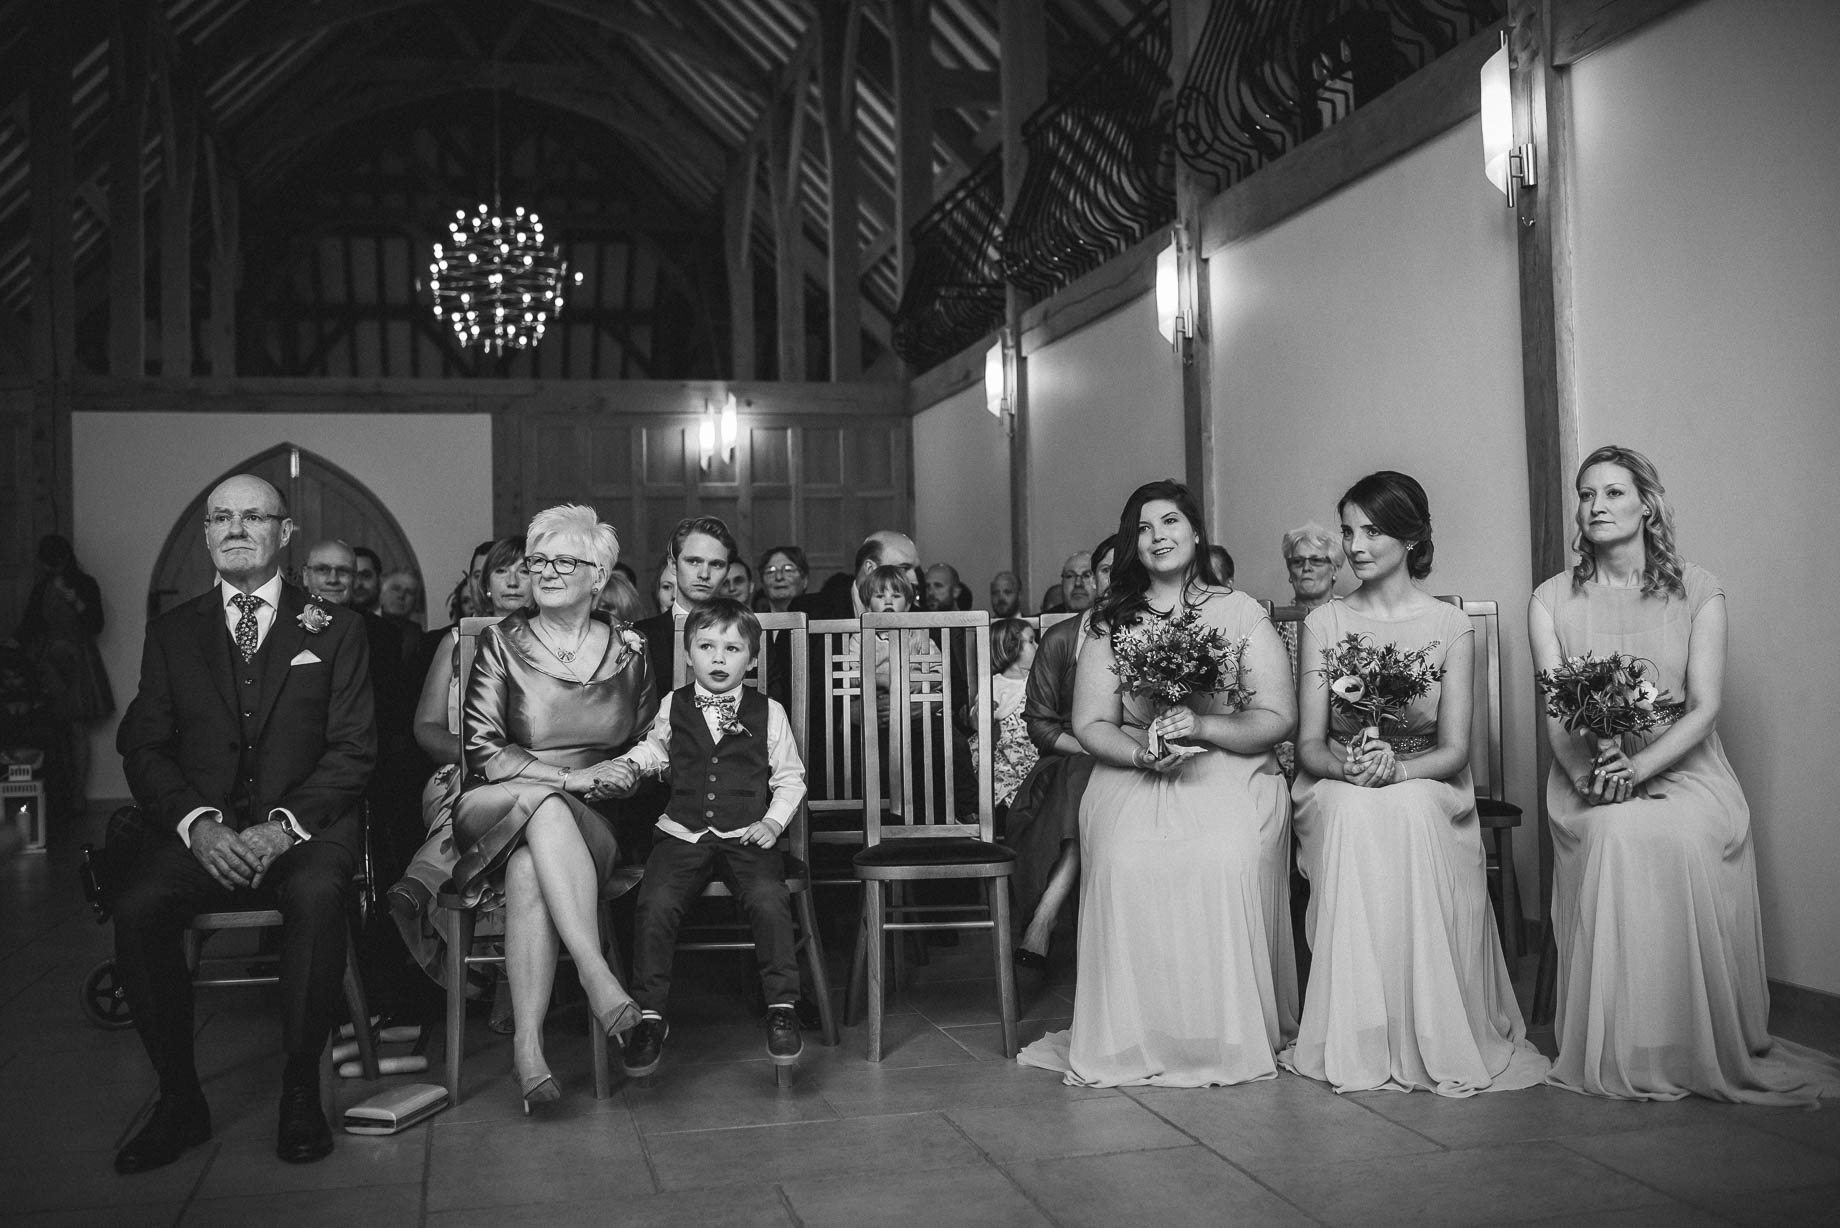 Rivervale Barn wedding photography by Guy Collier - Claire and Simon (57 of 133)